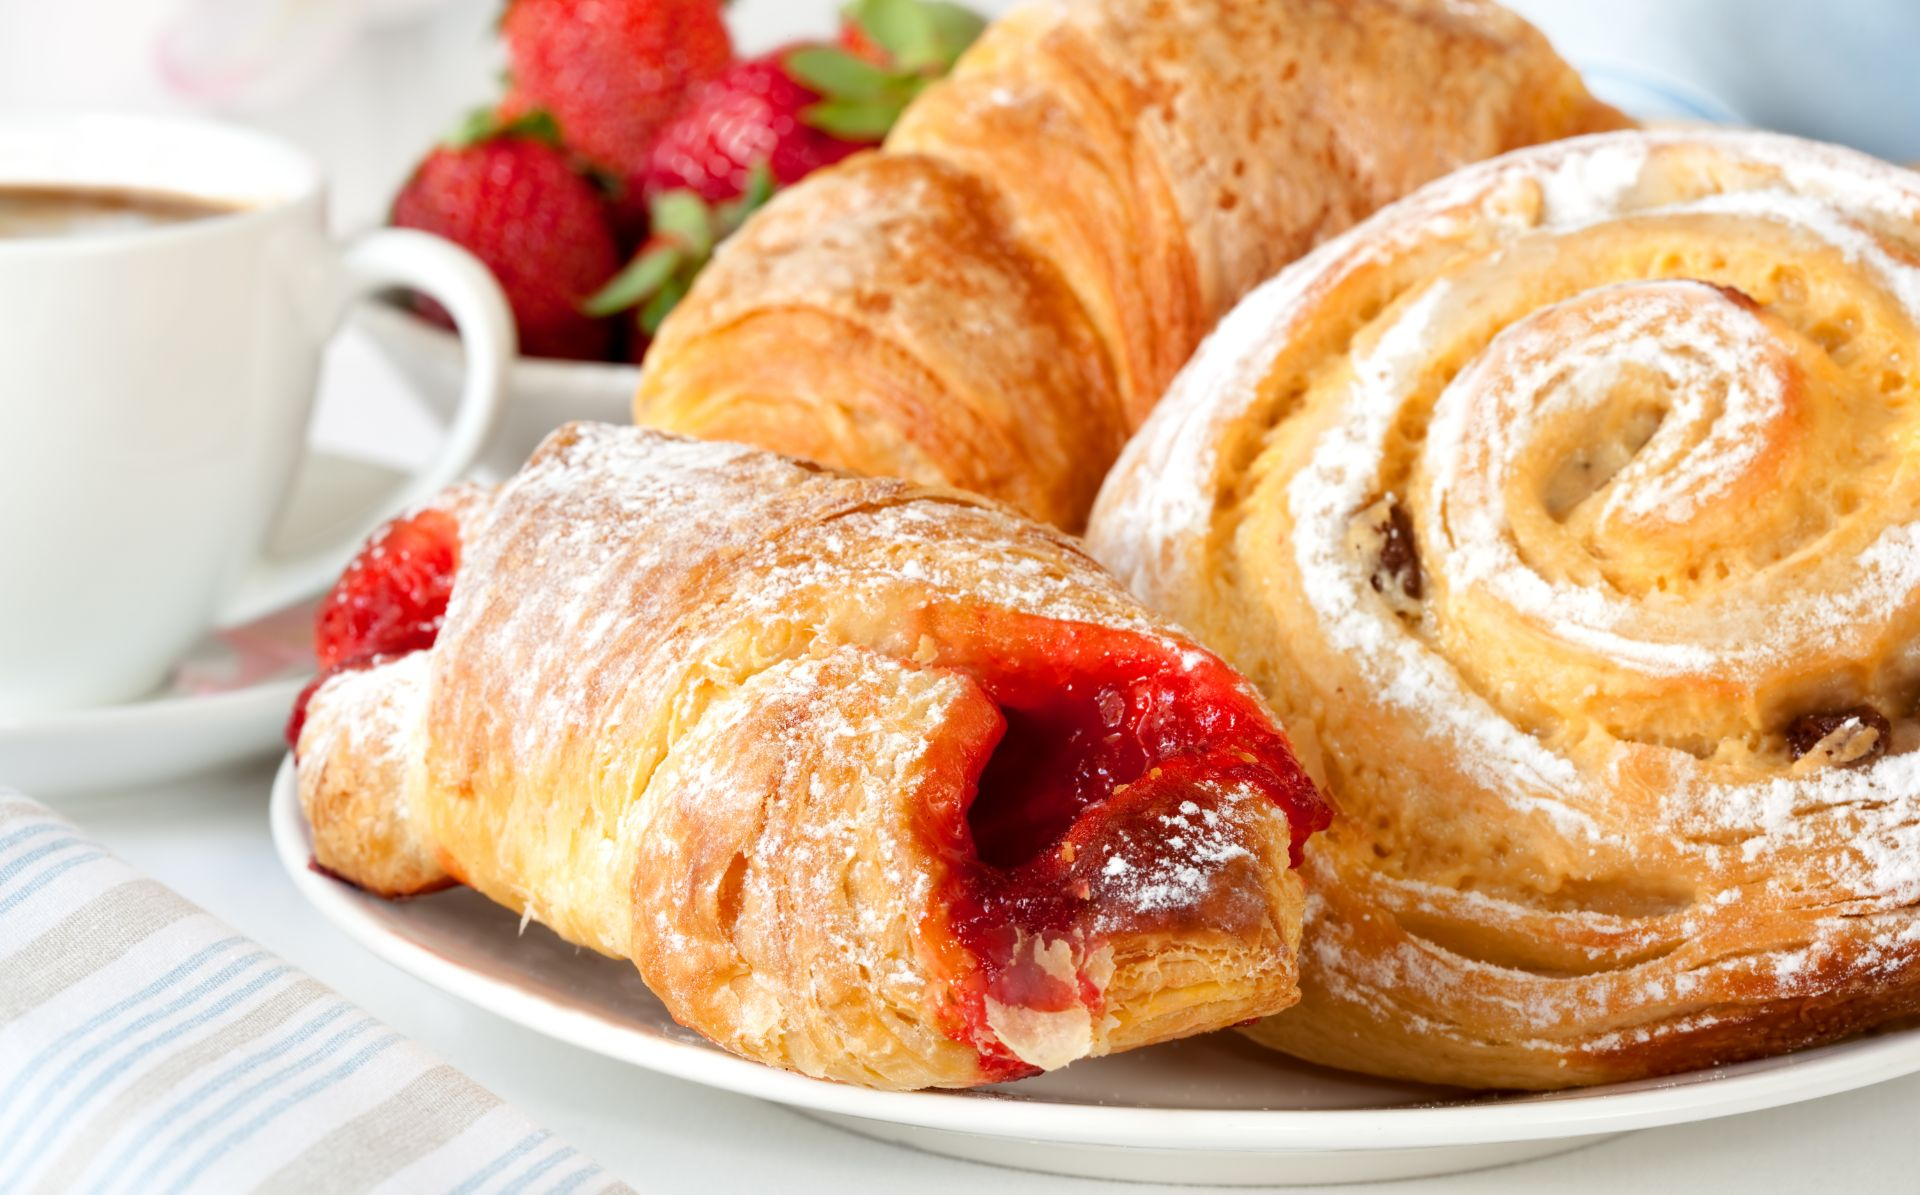 Assortement of breakfast pastries on a plate with a cup of coffee